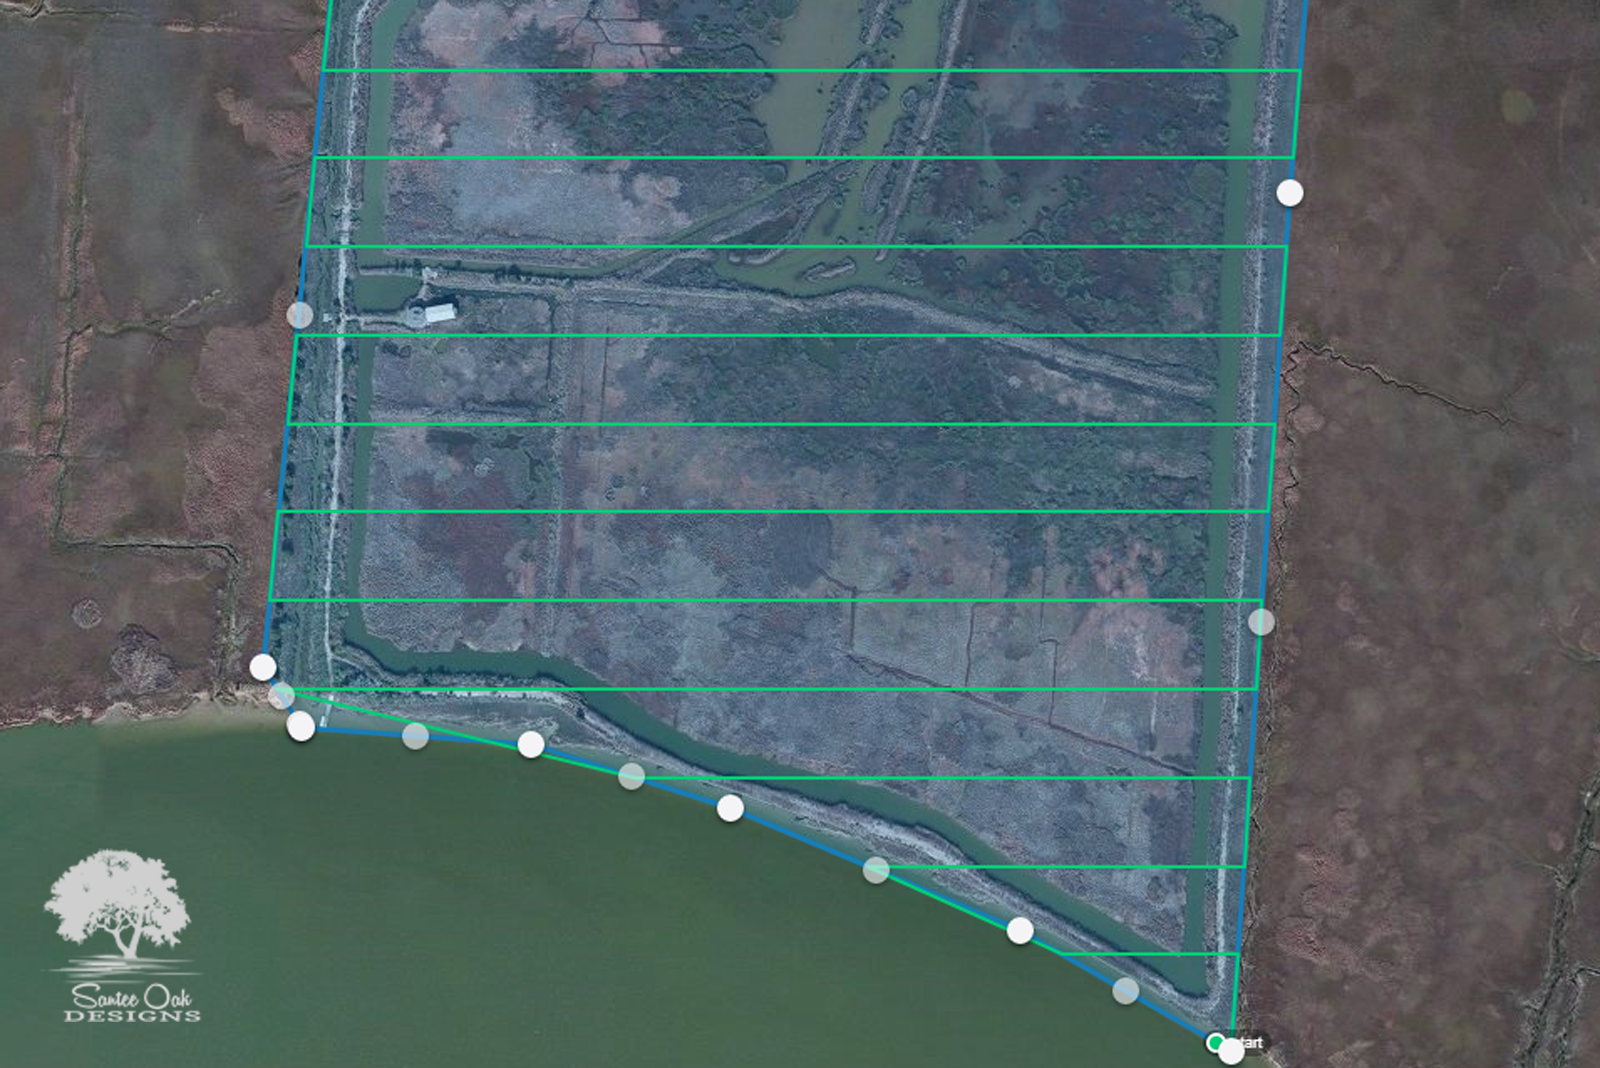 Planning the survey - We create a survey path for the drone. Once the conditions are right we will fly the survey and depending on the size of your property capture hundreds or even thousands of pictures from above.